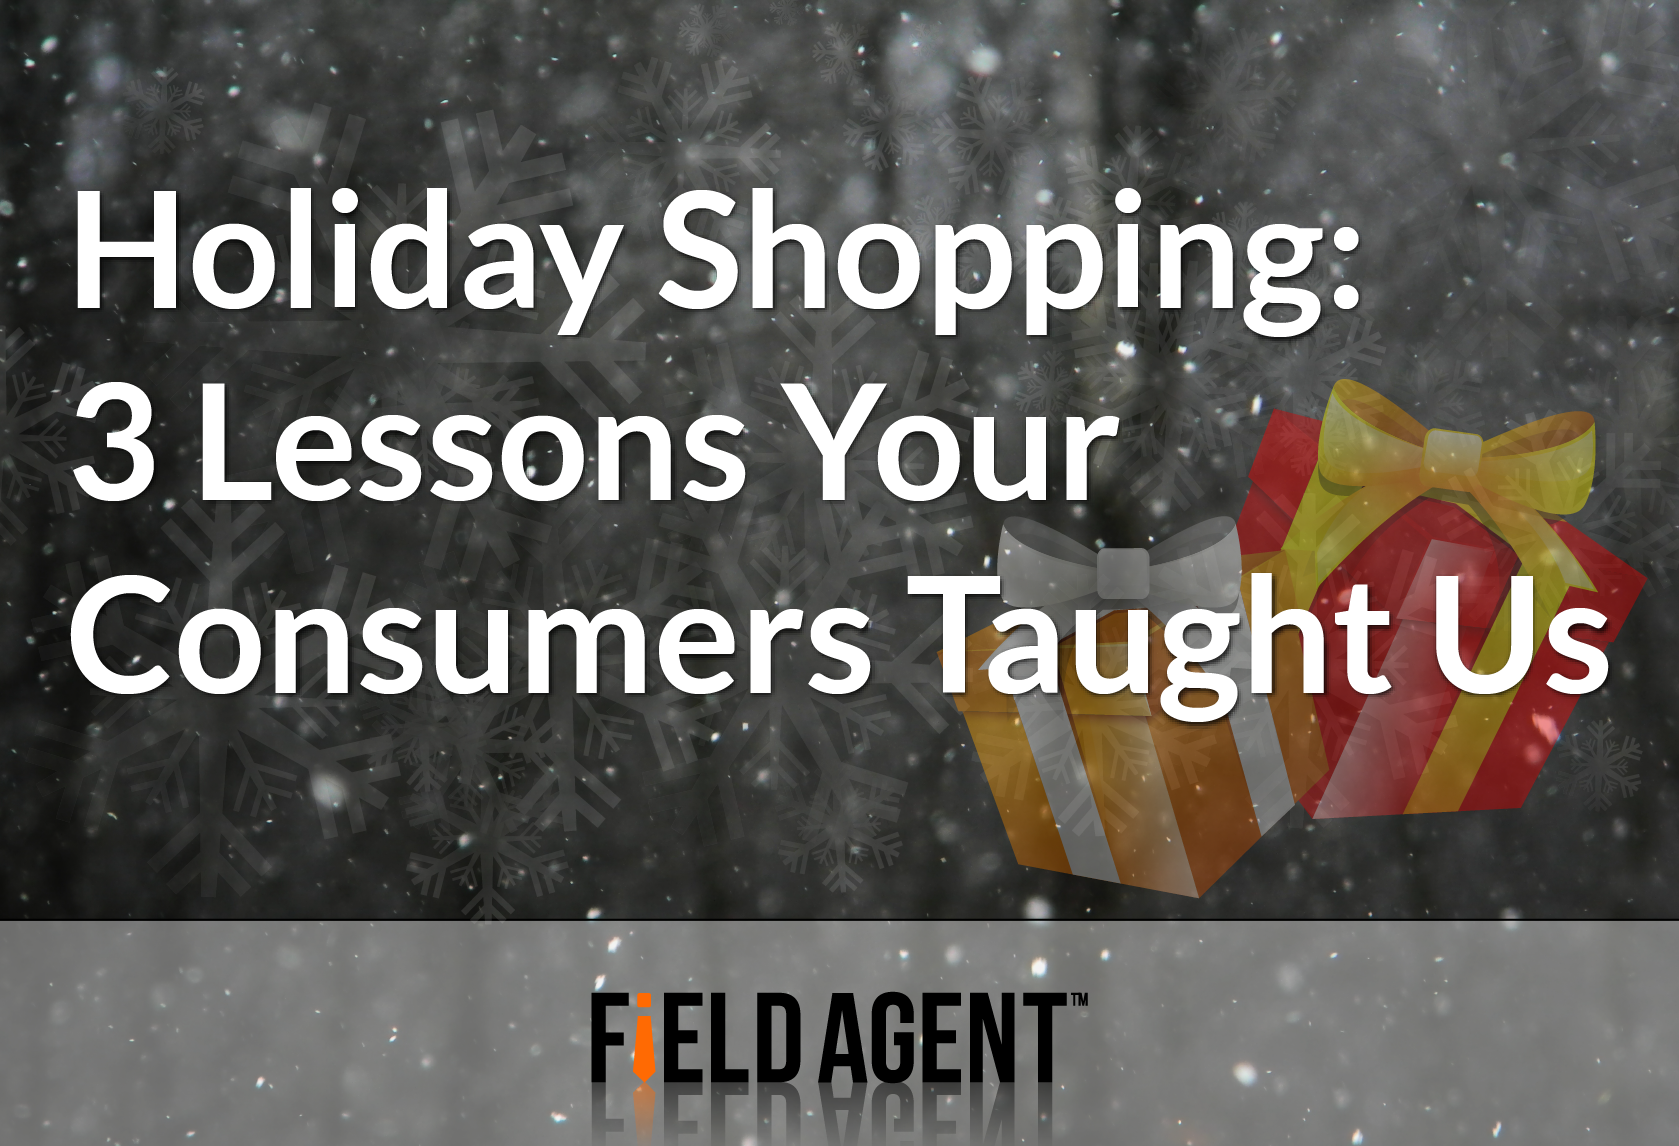 Holiday Shopping: 3 Lessons Your Consumers Taught Us